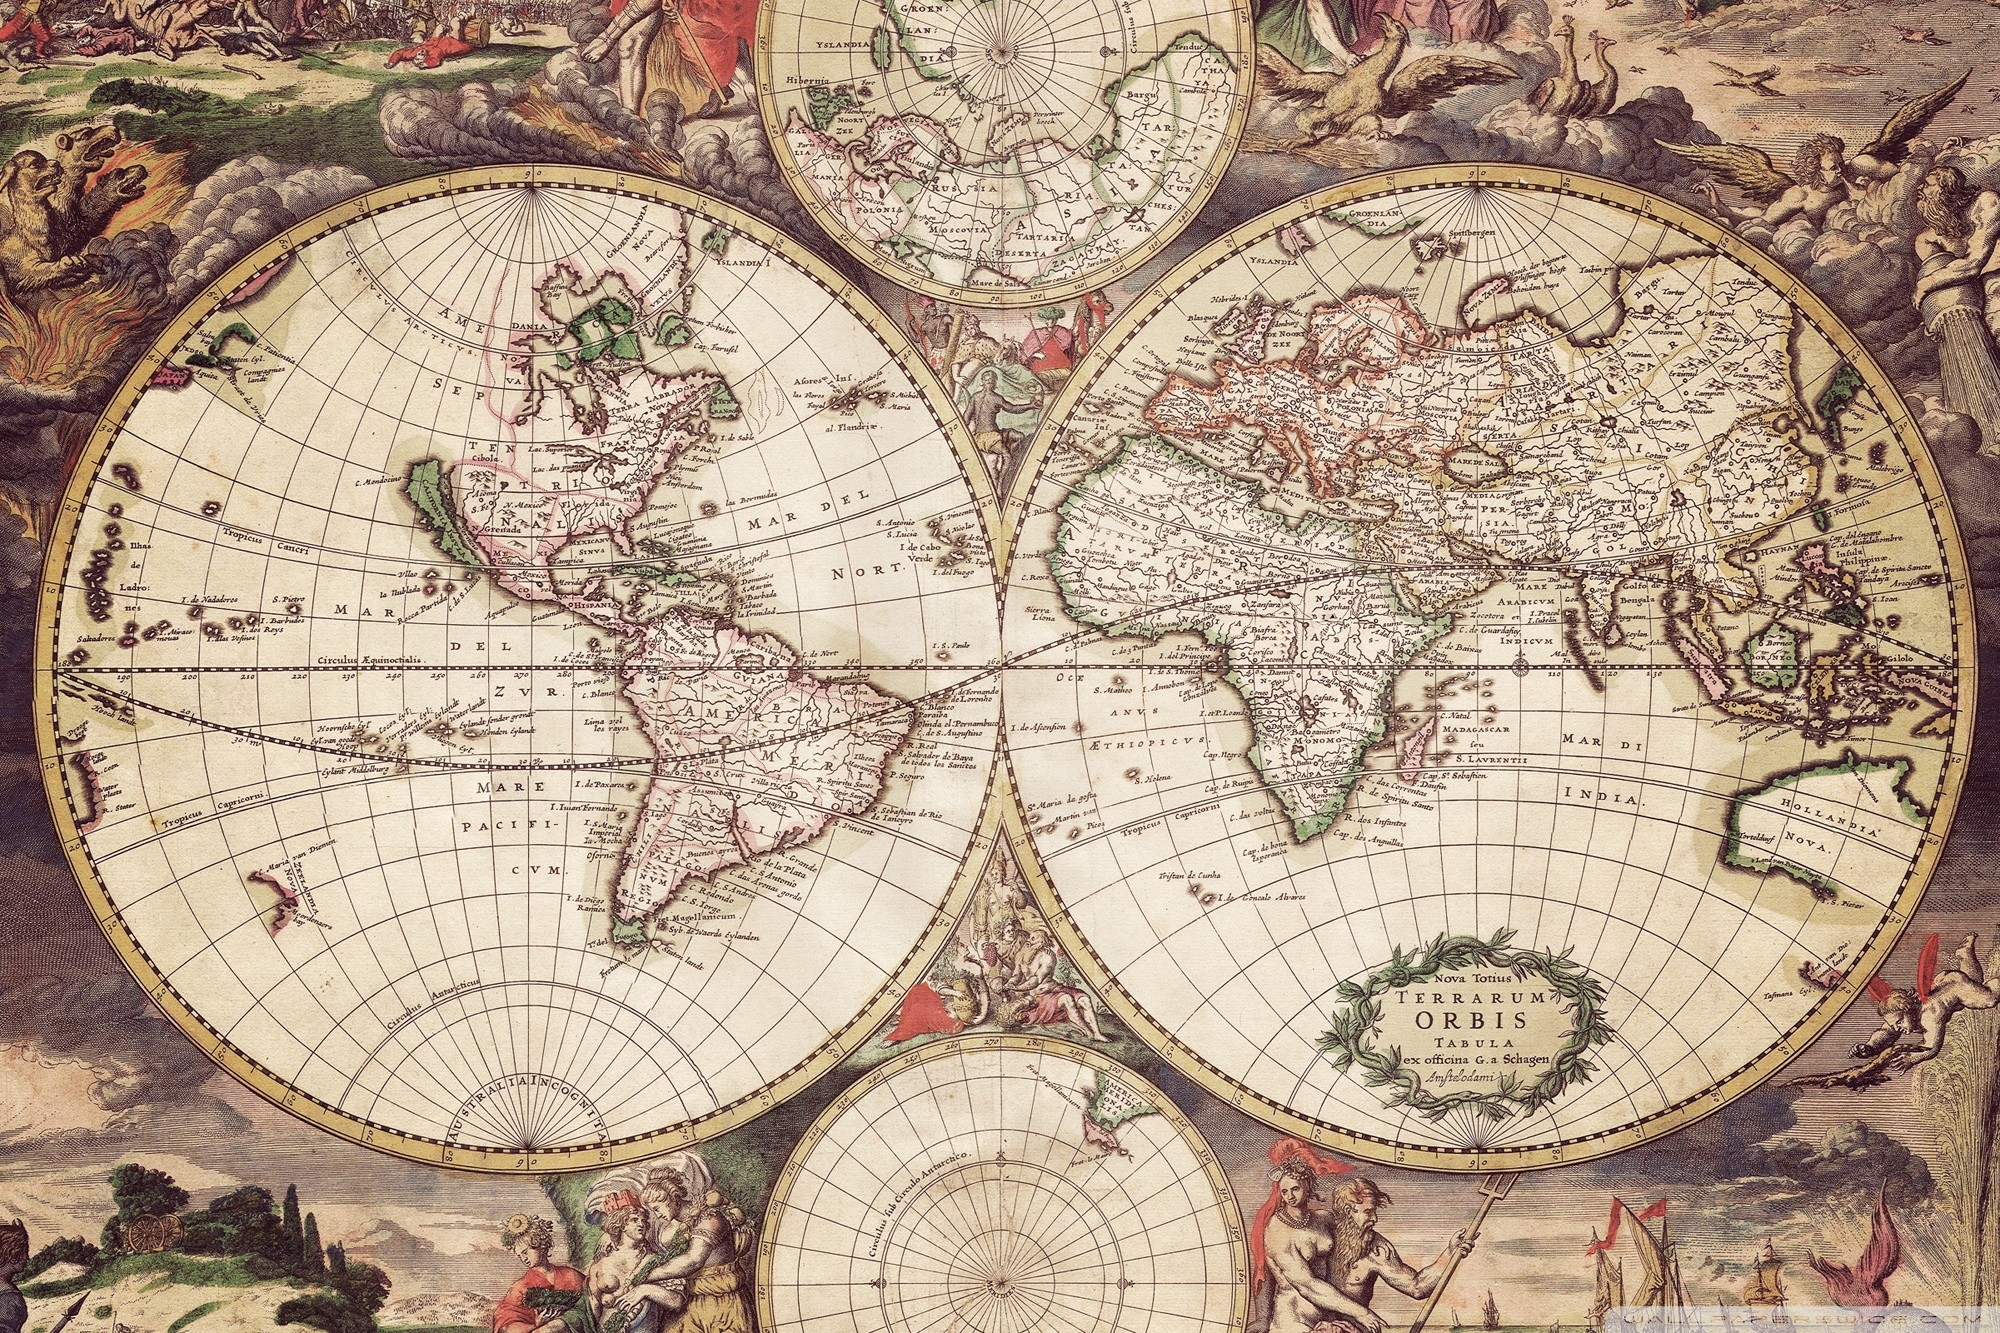 Antique world map wallpaper 39 images 3000x2032 vintage world map wallpaper gumiabroncs Choice Image